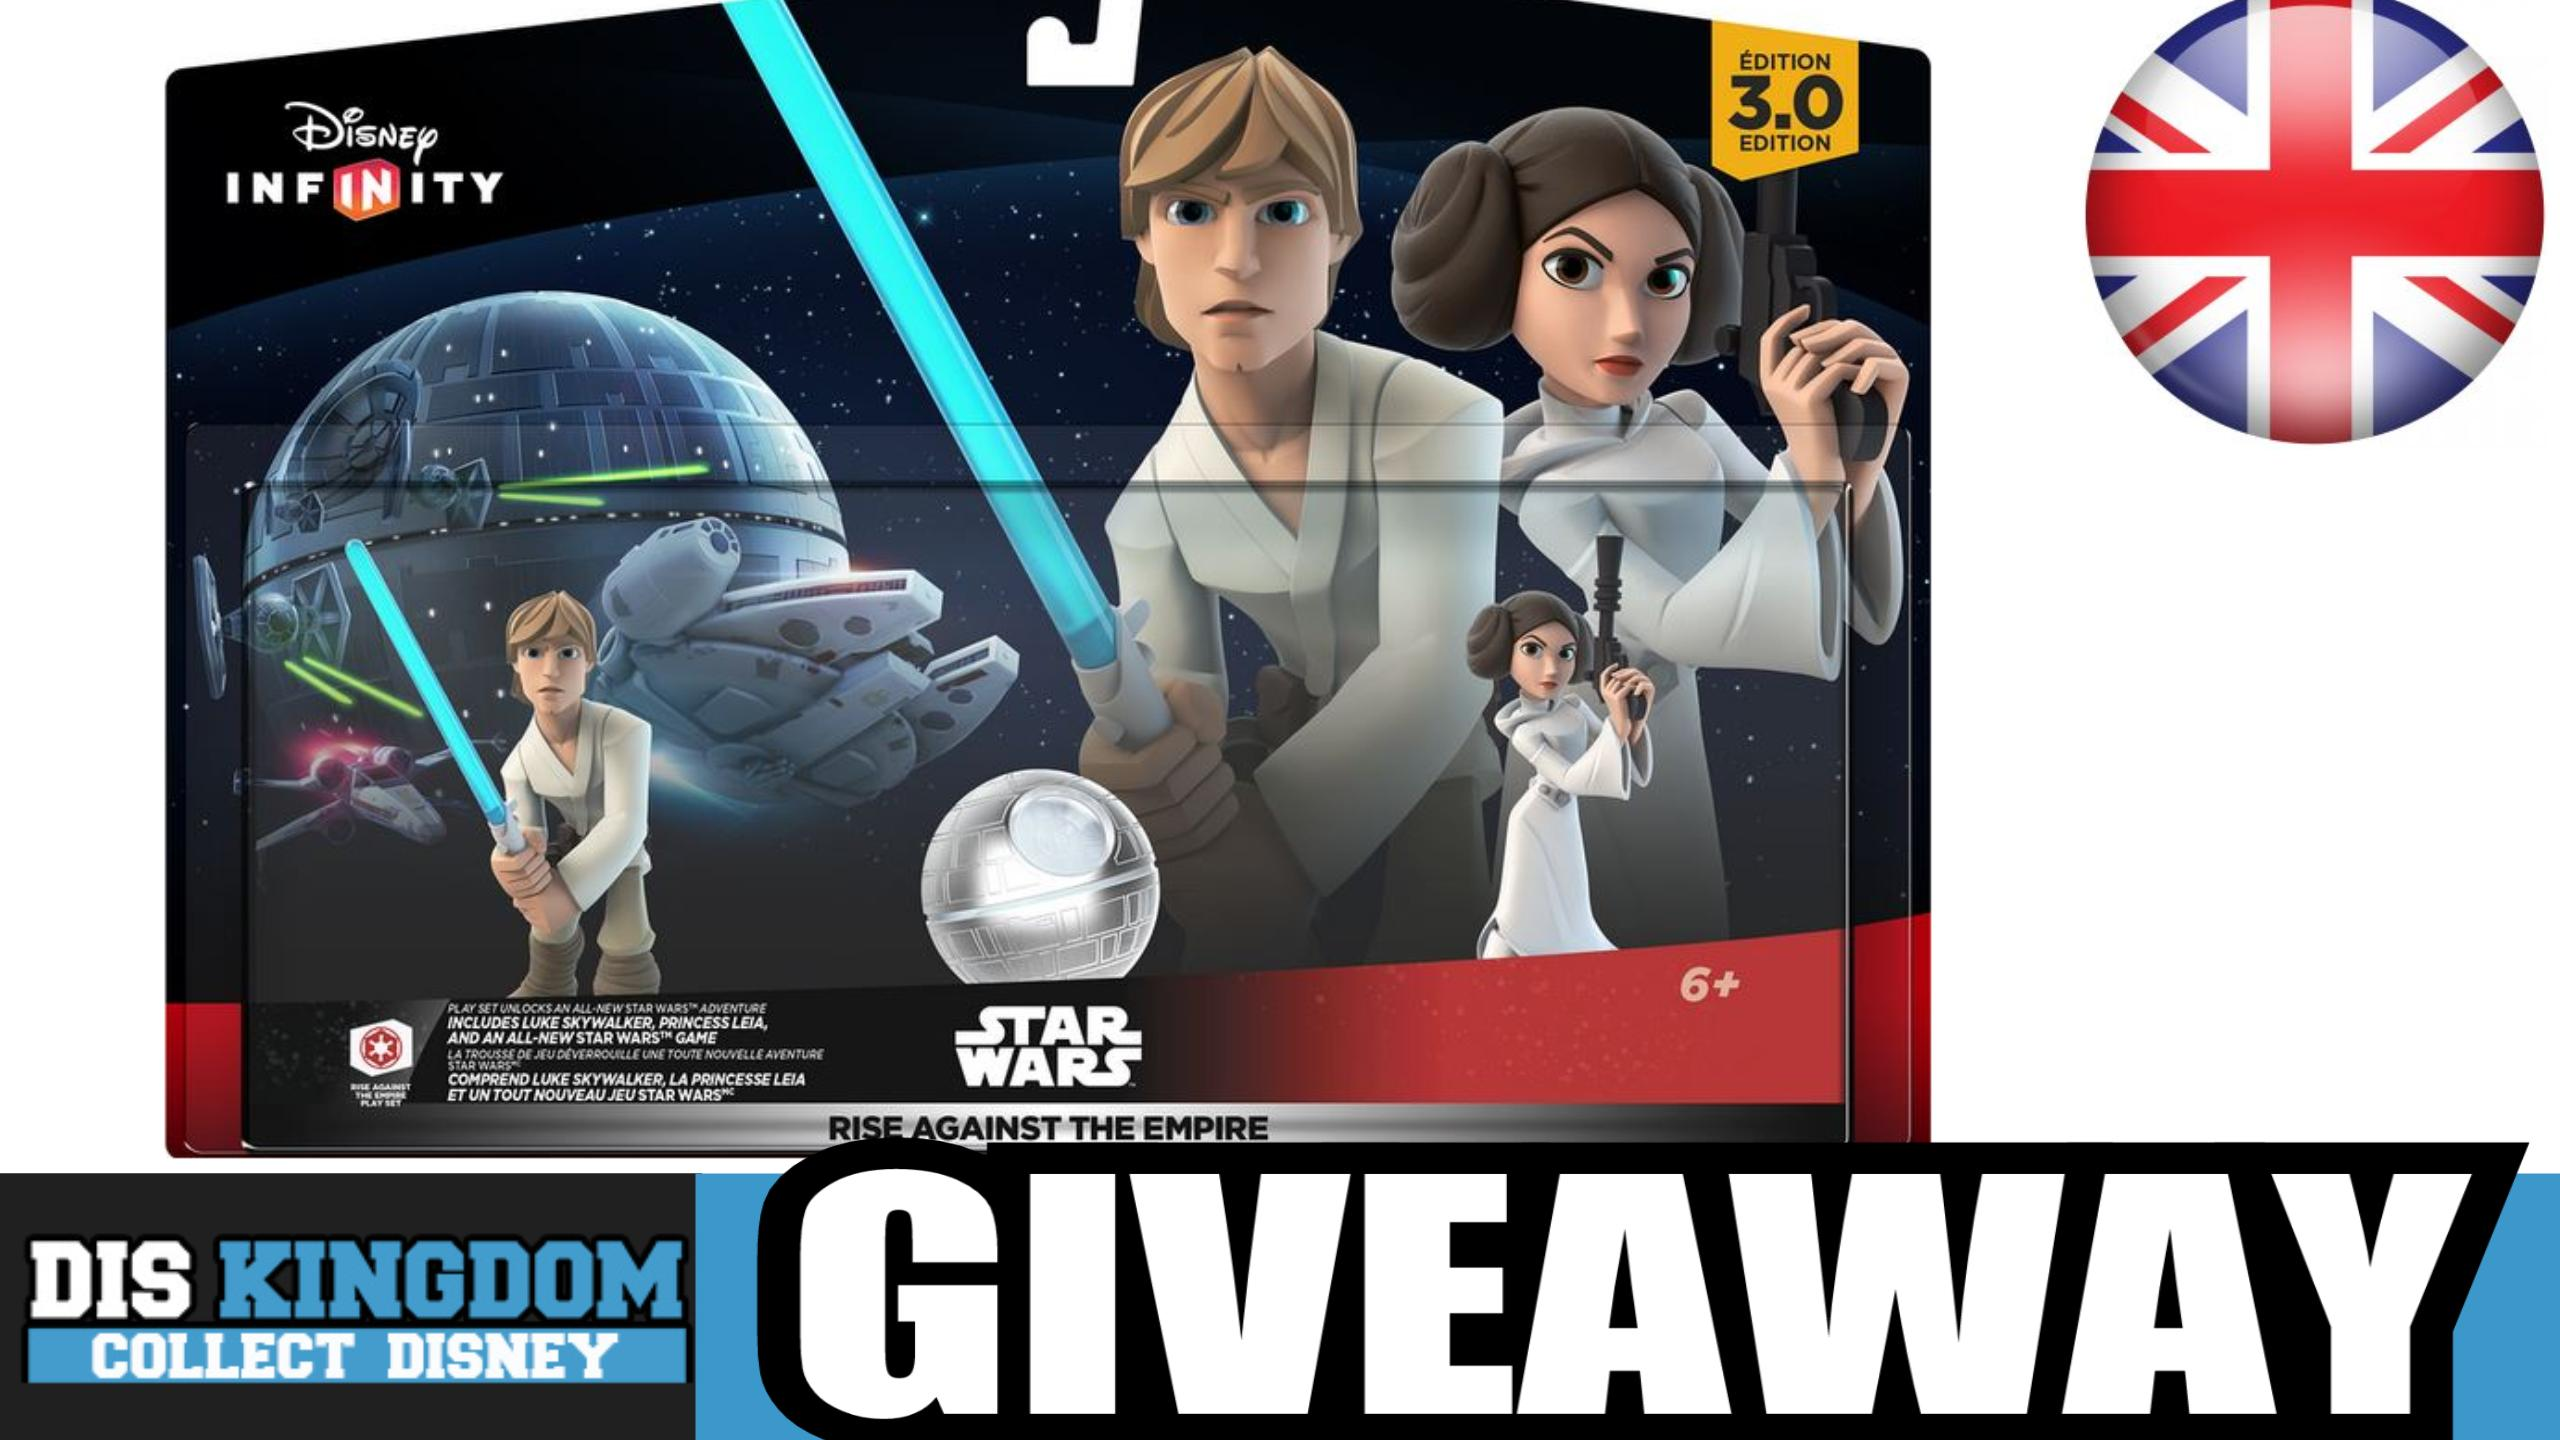 Disney Infinity 3.0 Star Wars Rise Against The Empire Giveaway (UK)